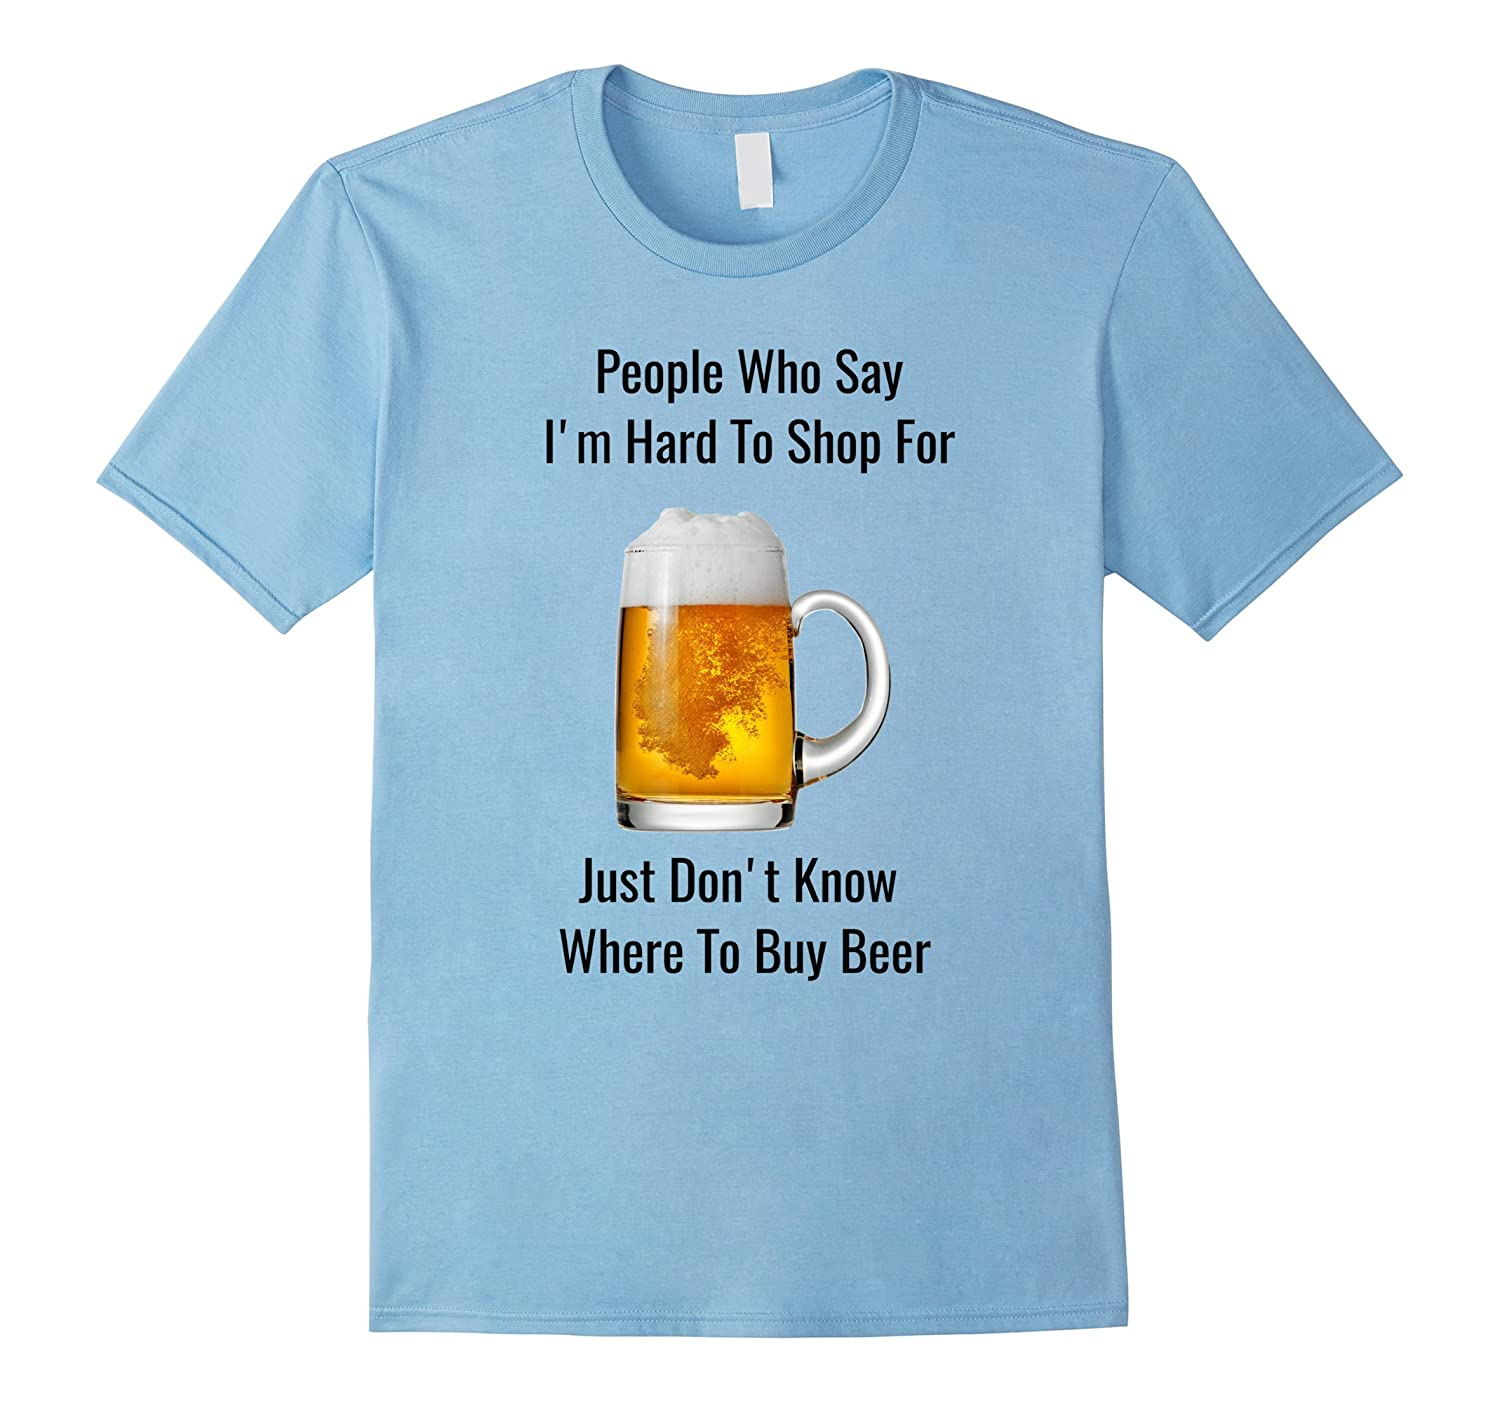 Im Not Hard To Shop ForBuy Beer T-shirt-Vaci